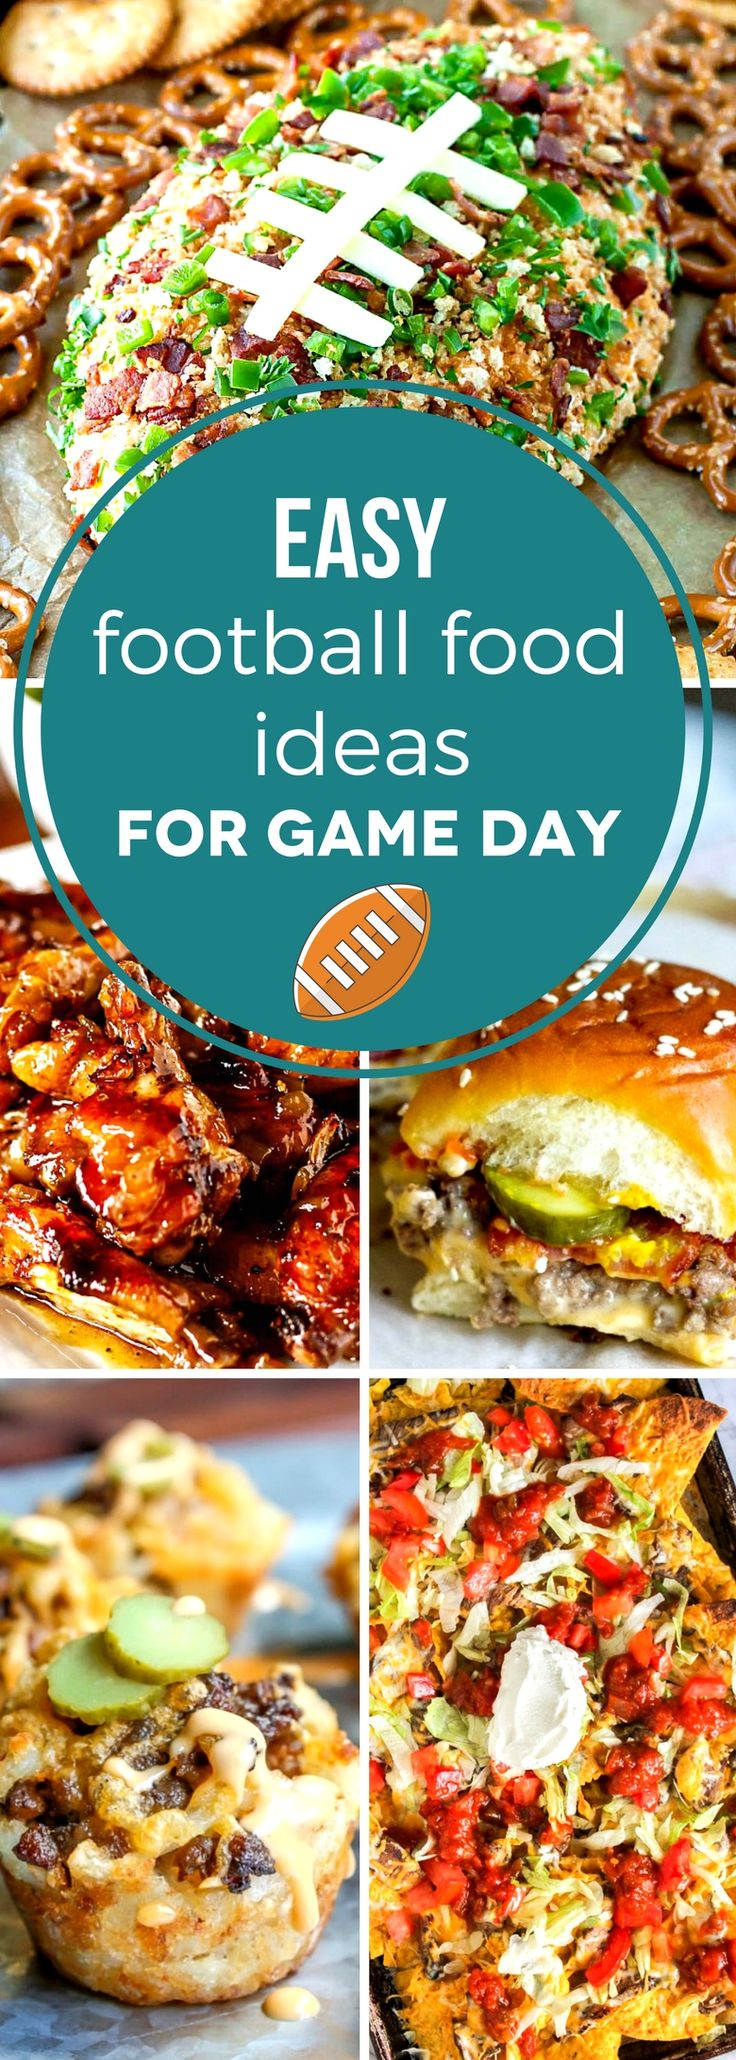 Get game day ready with these easy football food ideas for game day! Don't spend all your time in the kitchen and miss the big game. With over 30 deliciously easy recipes, you're guaranteed to find the perfect game day food for your party, big or small! #SundaySupper #tailgating #footballfood #gamedayfood #fingerfood